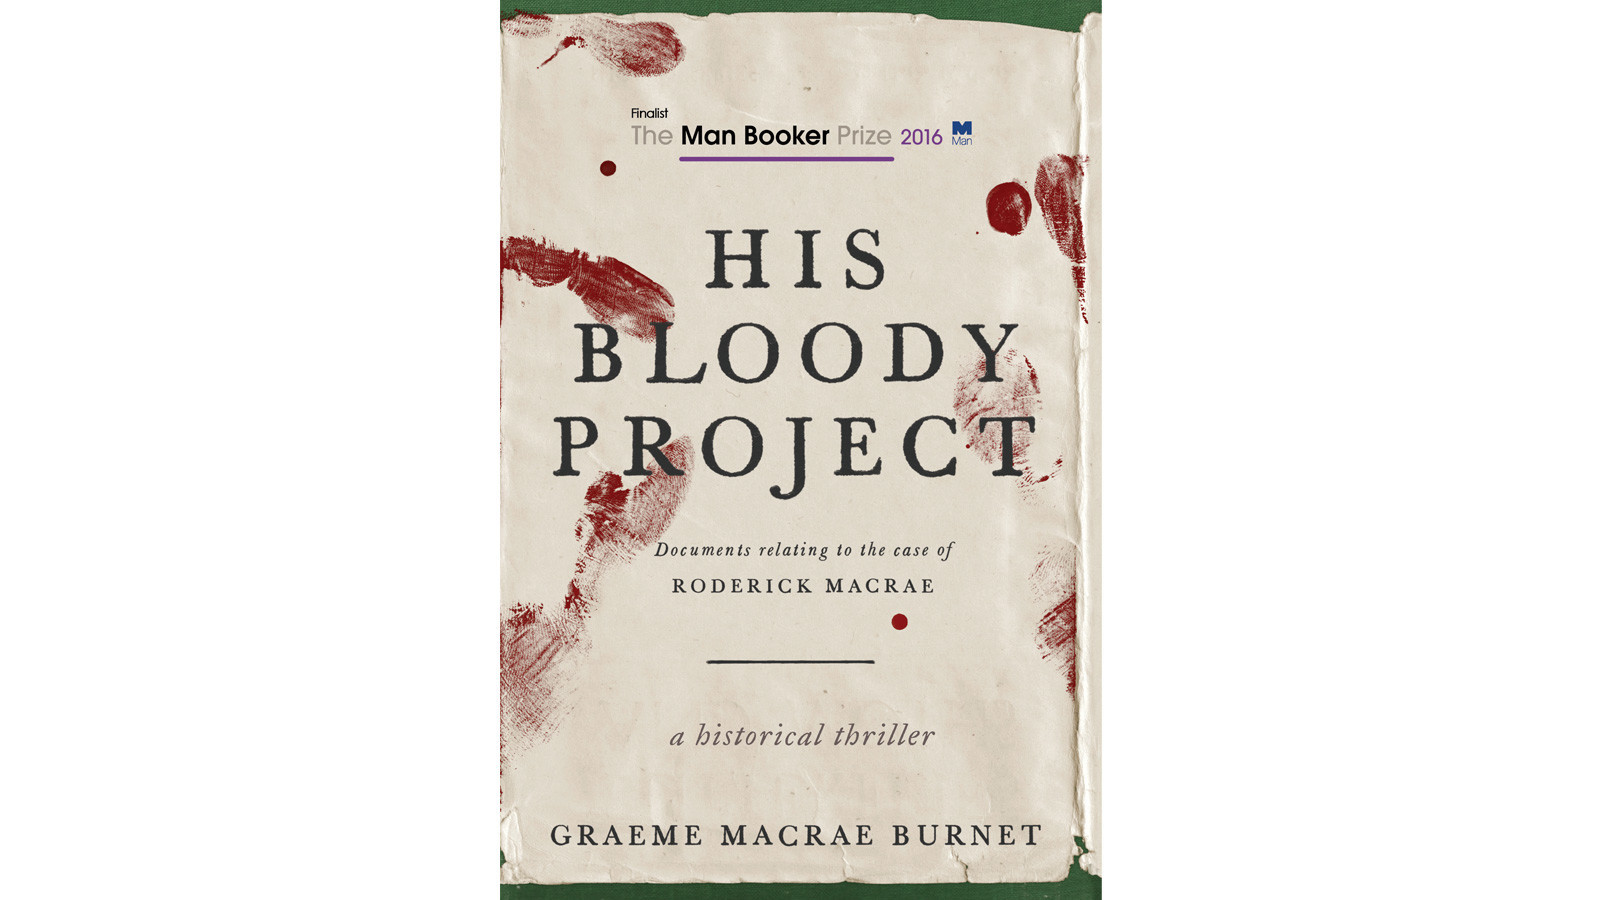 Review: A thriller with a fine literary pedigree: 'His Bloody Project' by Graeme Macrae Burnet